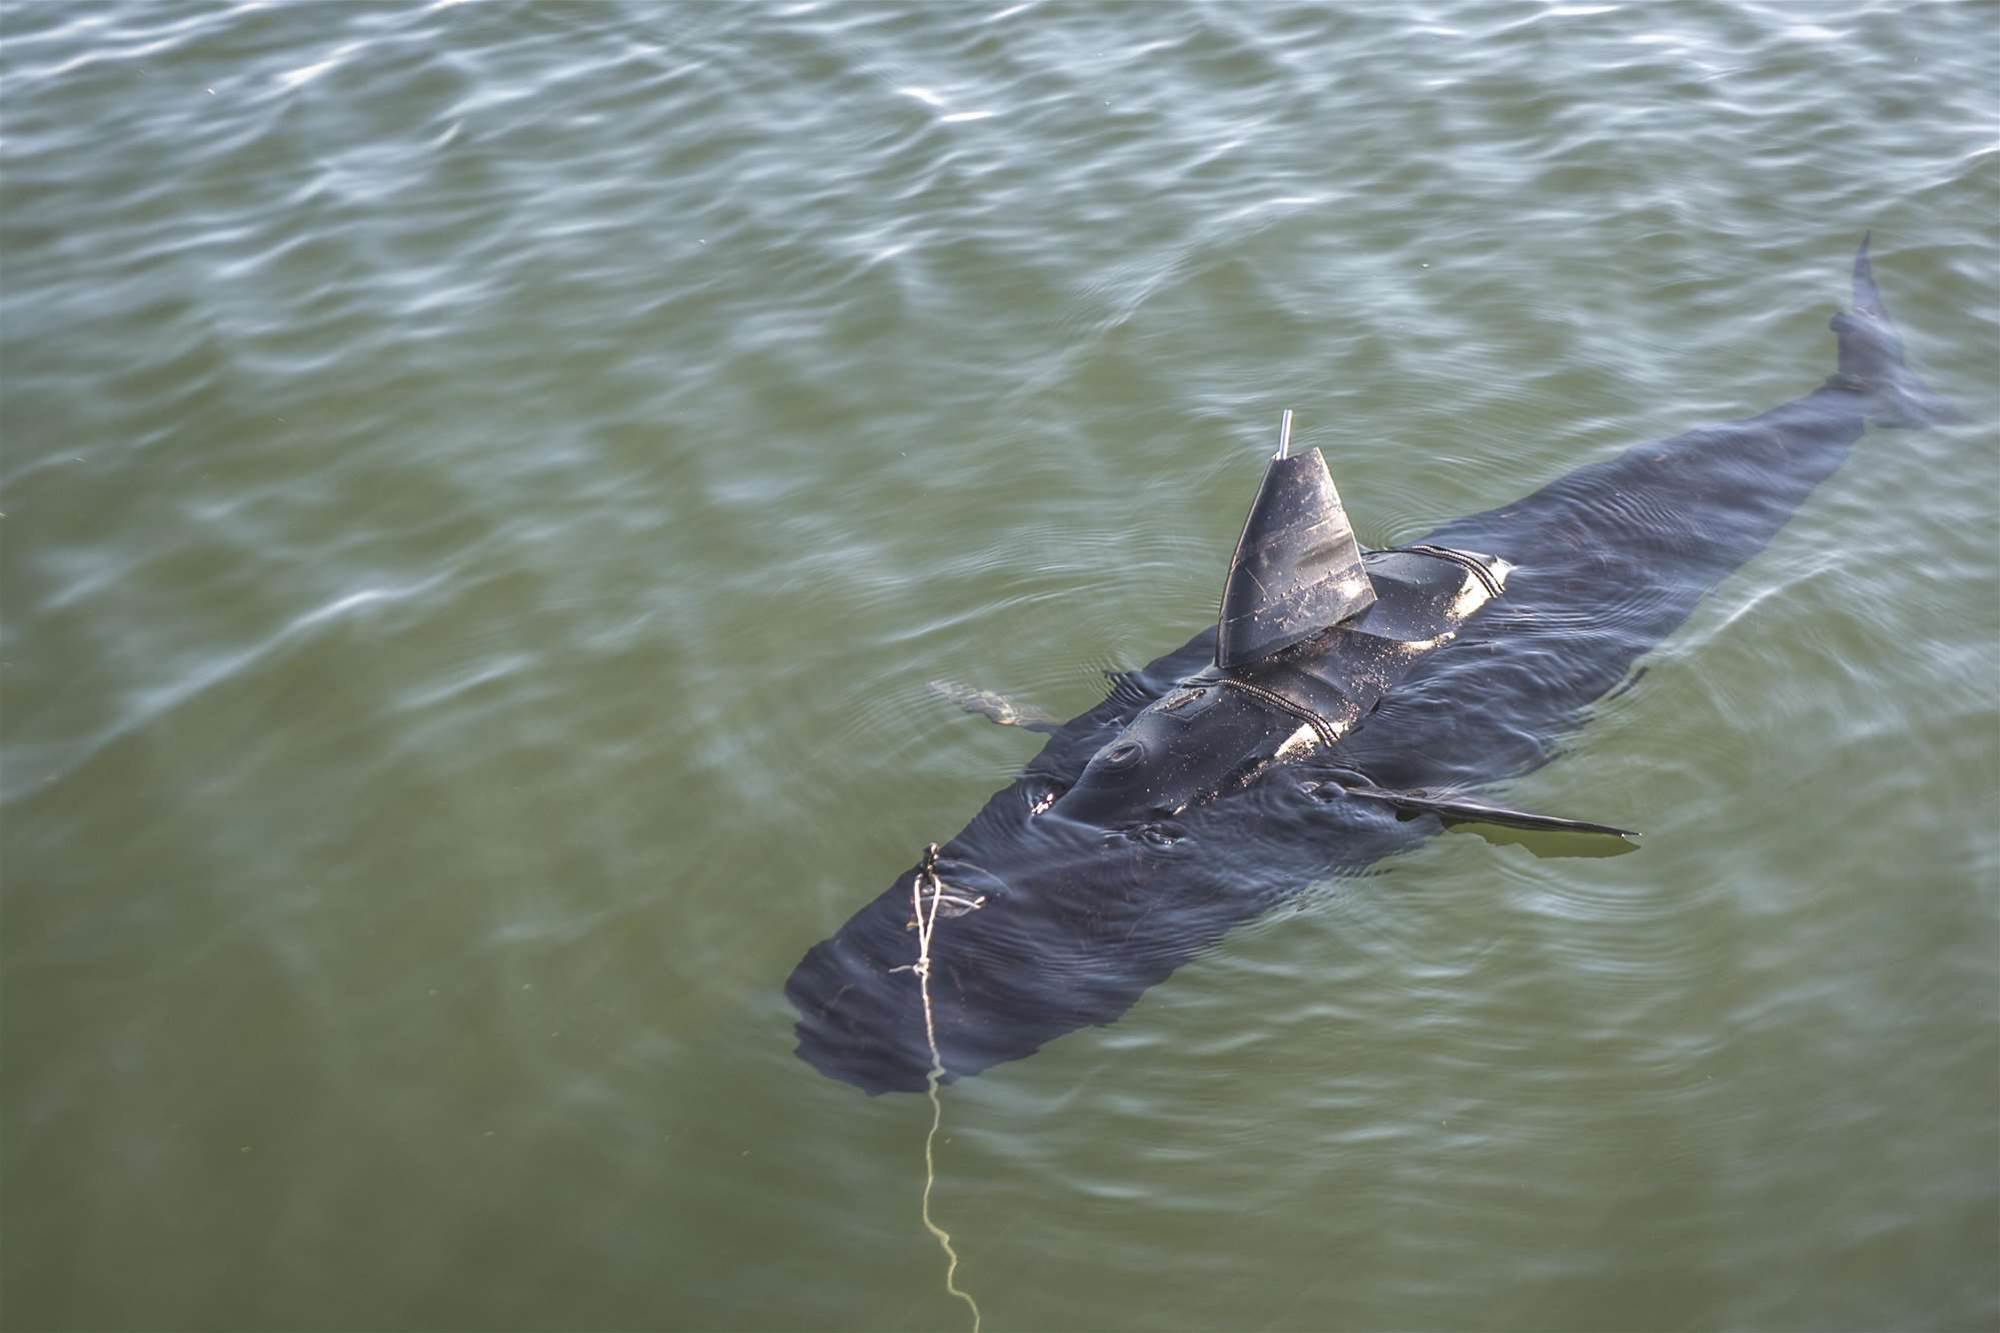 Photos: Meet the US Navy's drone shark